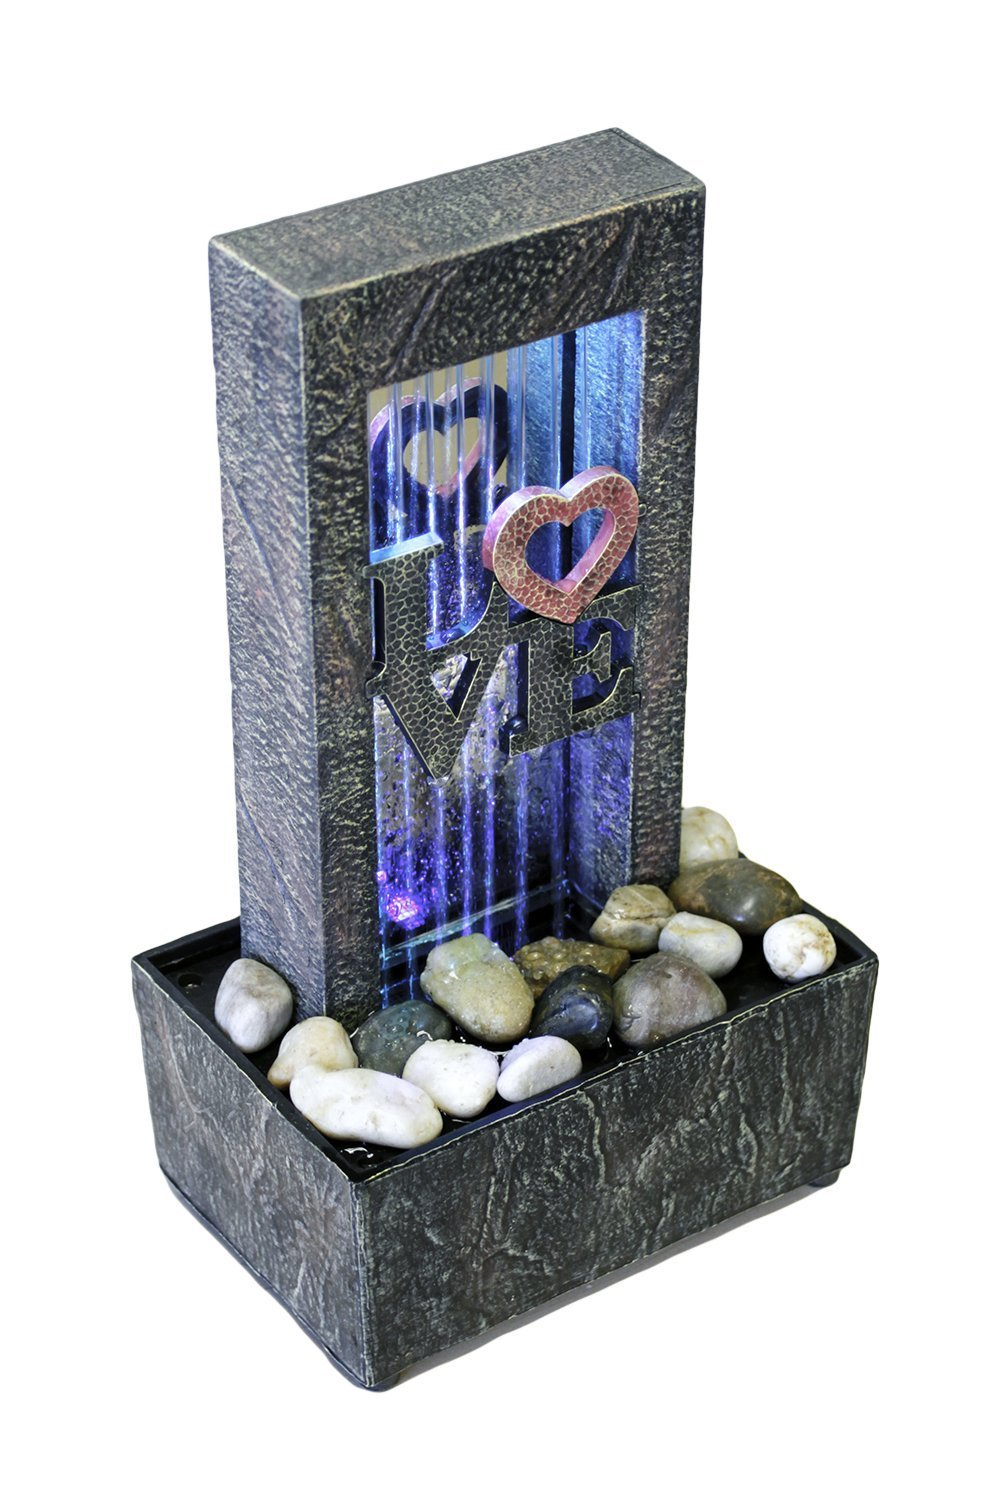 Newport coast collection Raining Love Color Changing LED Fountain 10075